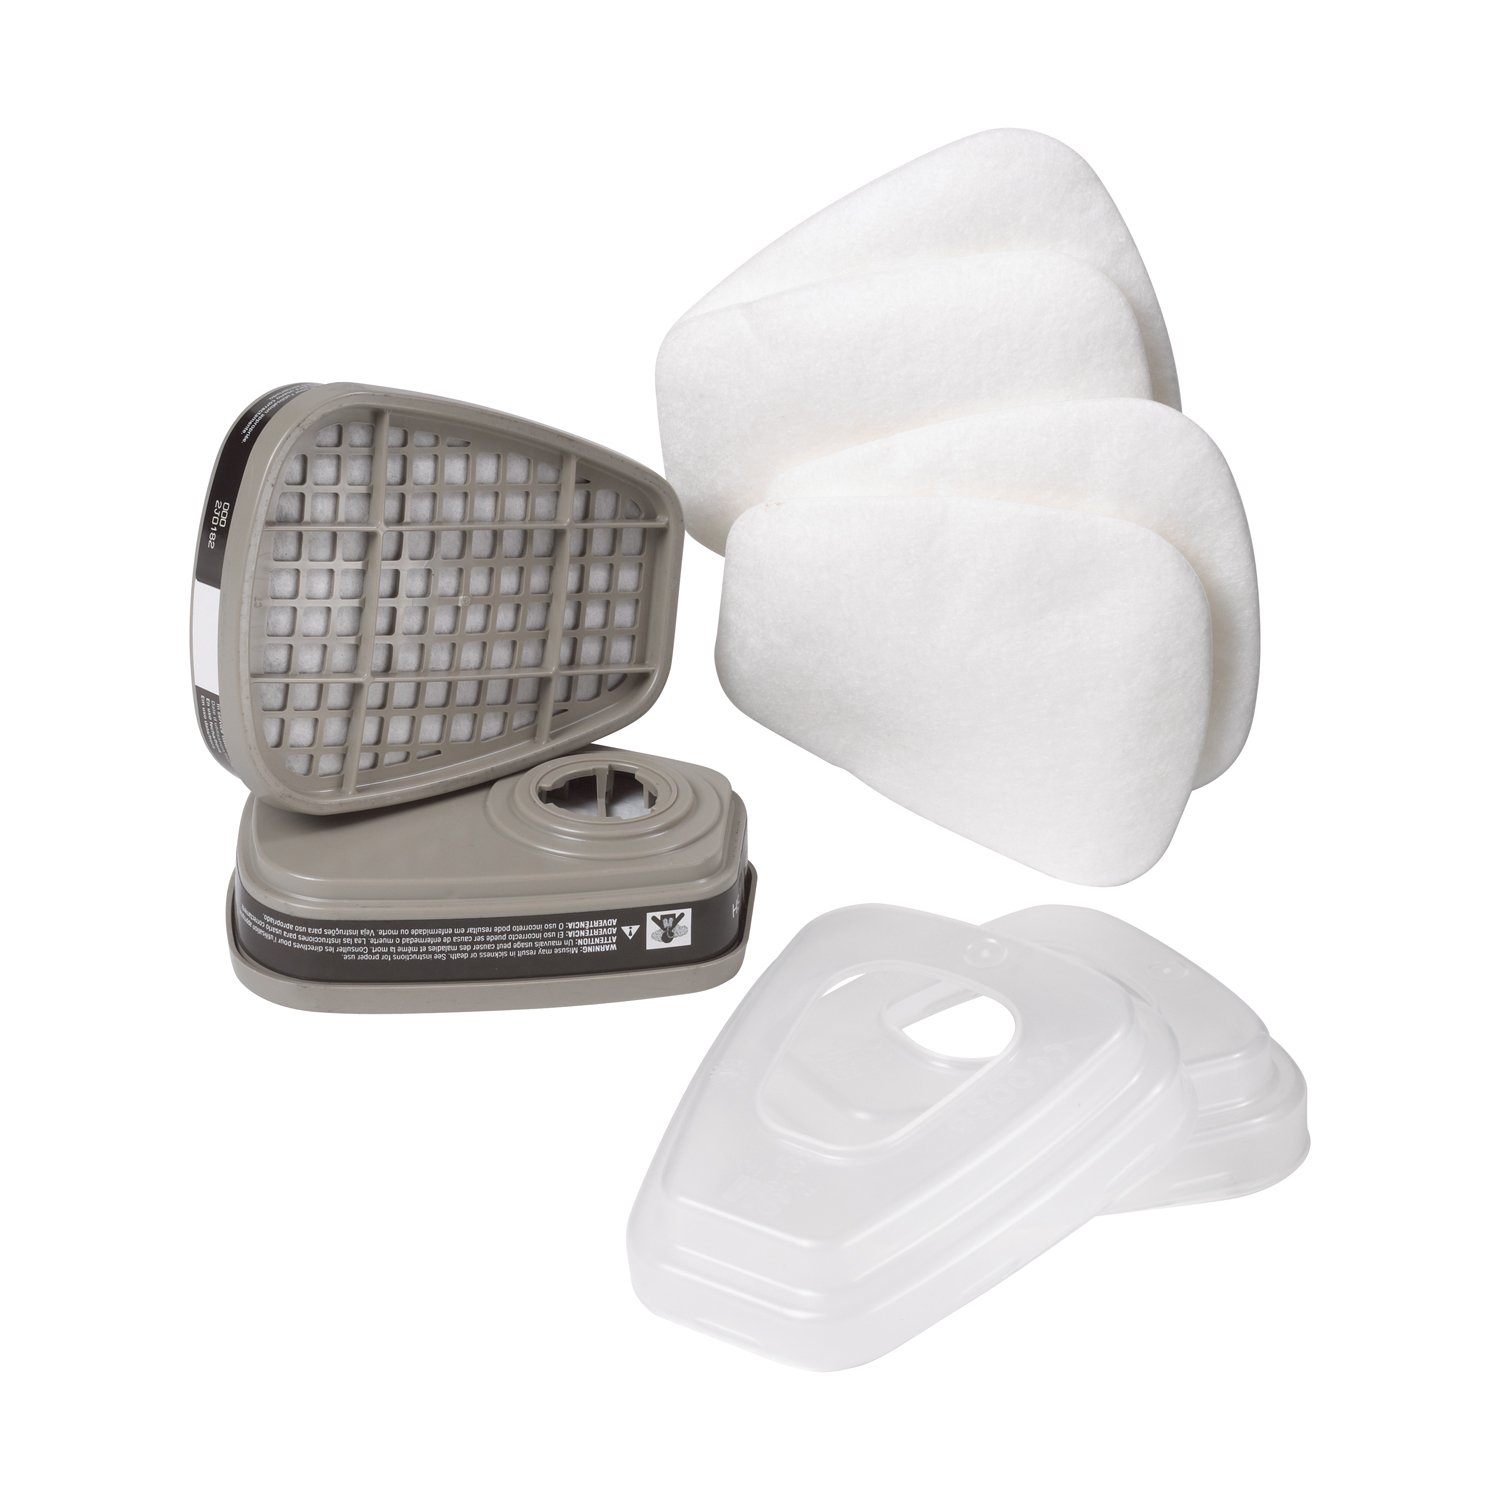 3M 62023DHA1-C Professional Multi-Purpose Drop Down Respirator, Medium by 3M Safety (Image #2)